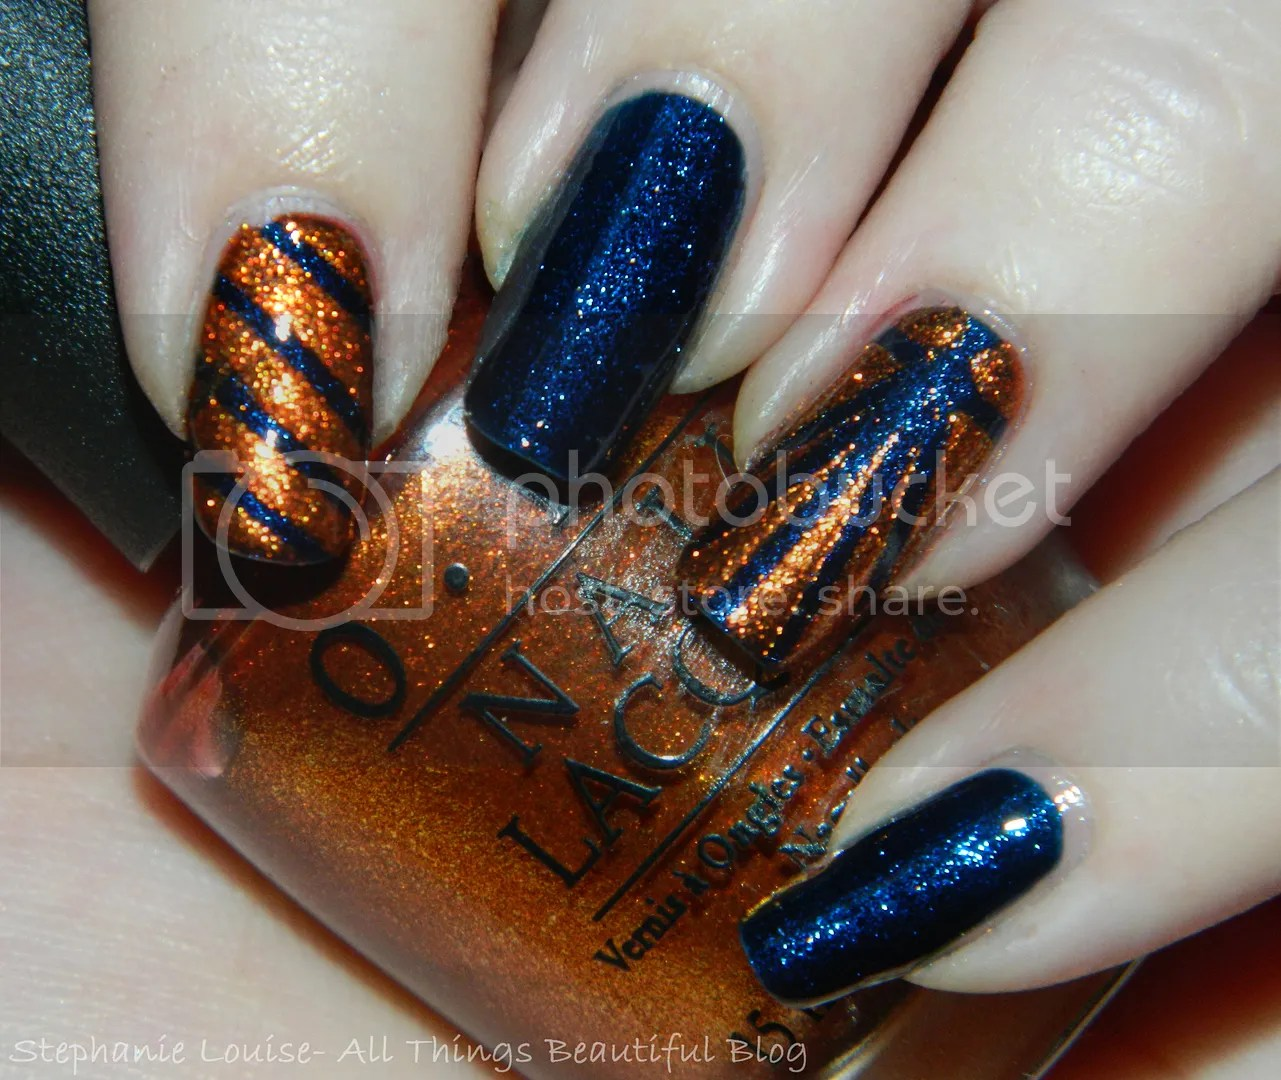 Simple Fall Nail Designs: OPI Sprung + Color Club Williamsburg Easy Fall Nail Art Combo